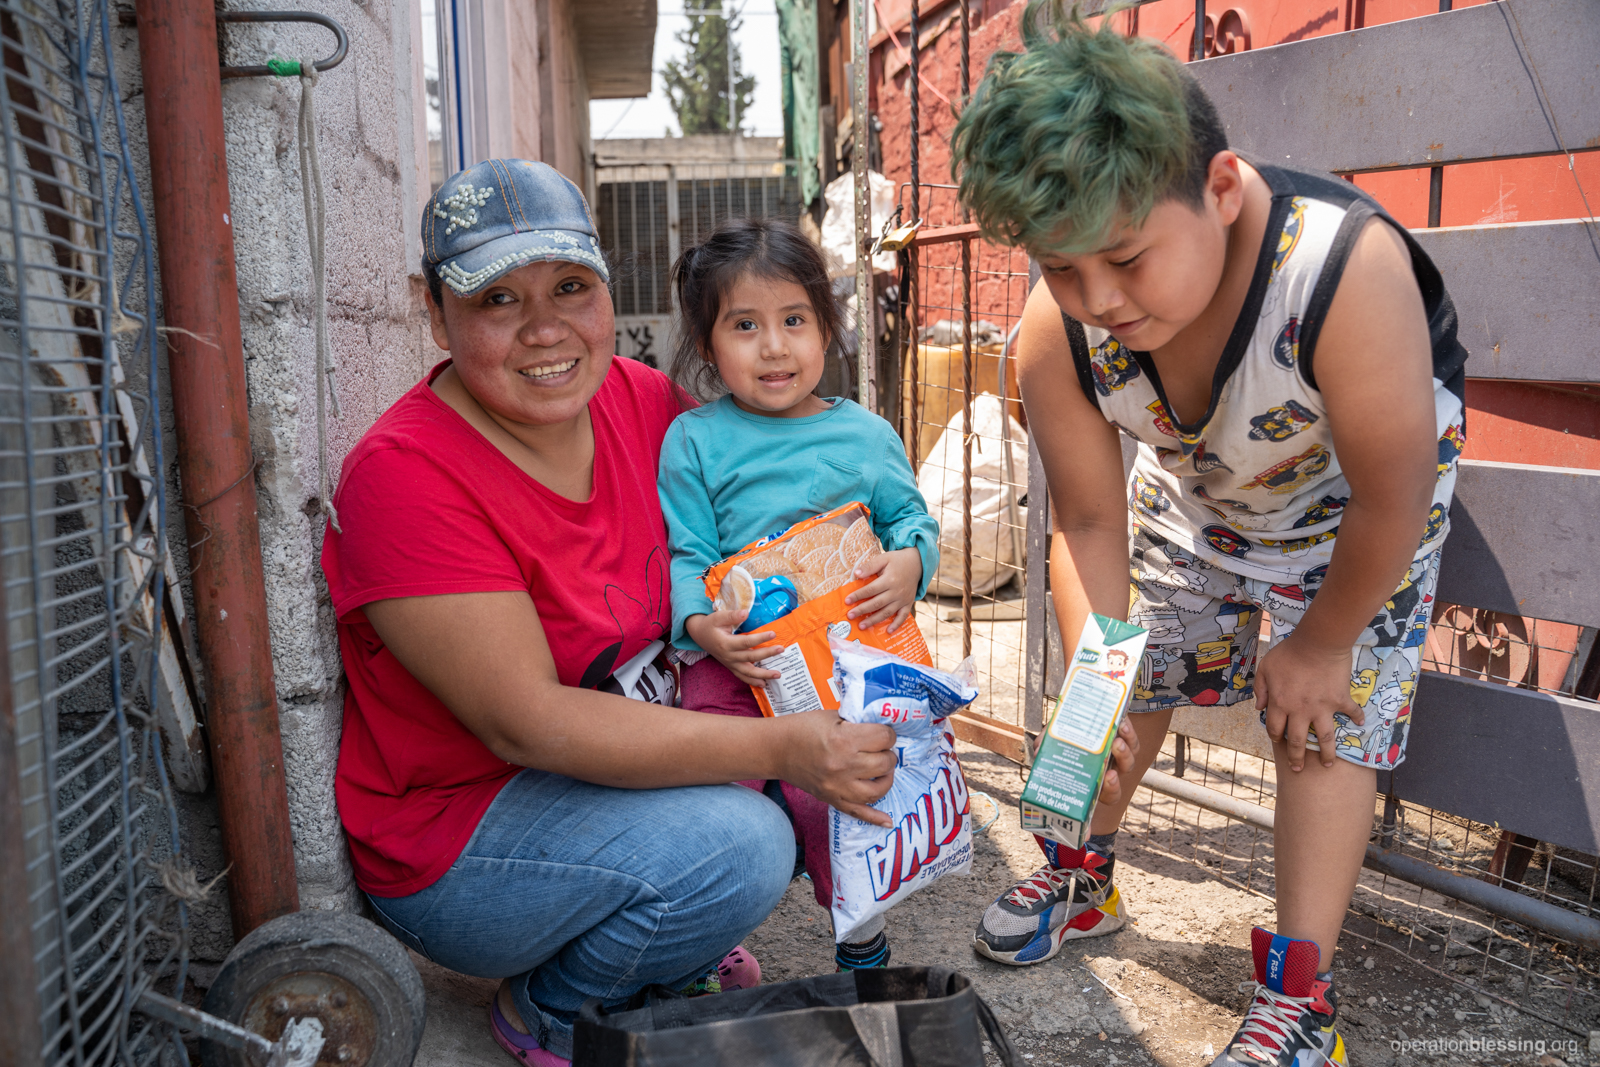 Mother in Mexico was offered hope during the pandemic thanks to friends like you.